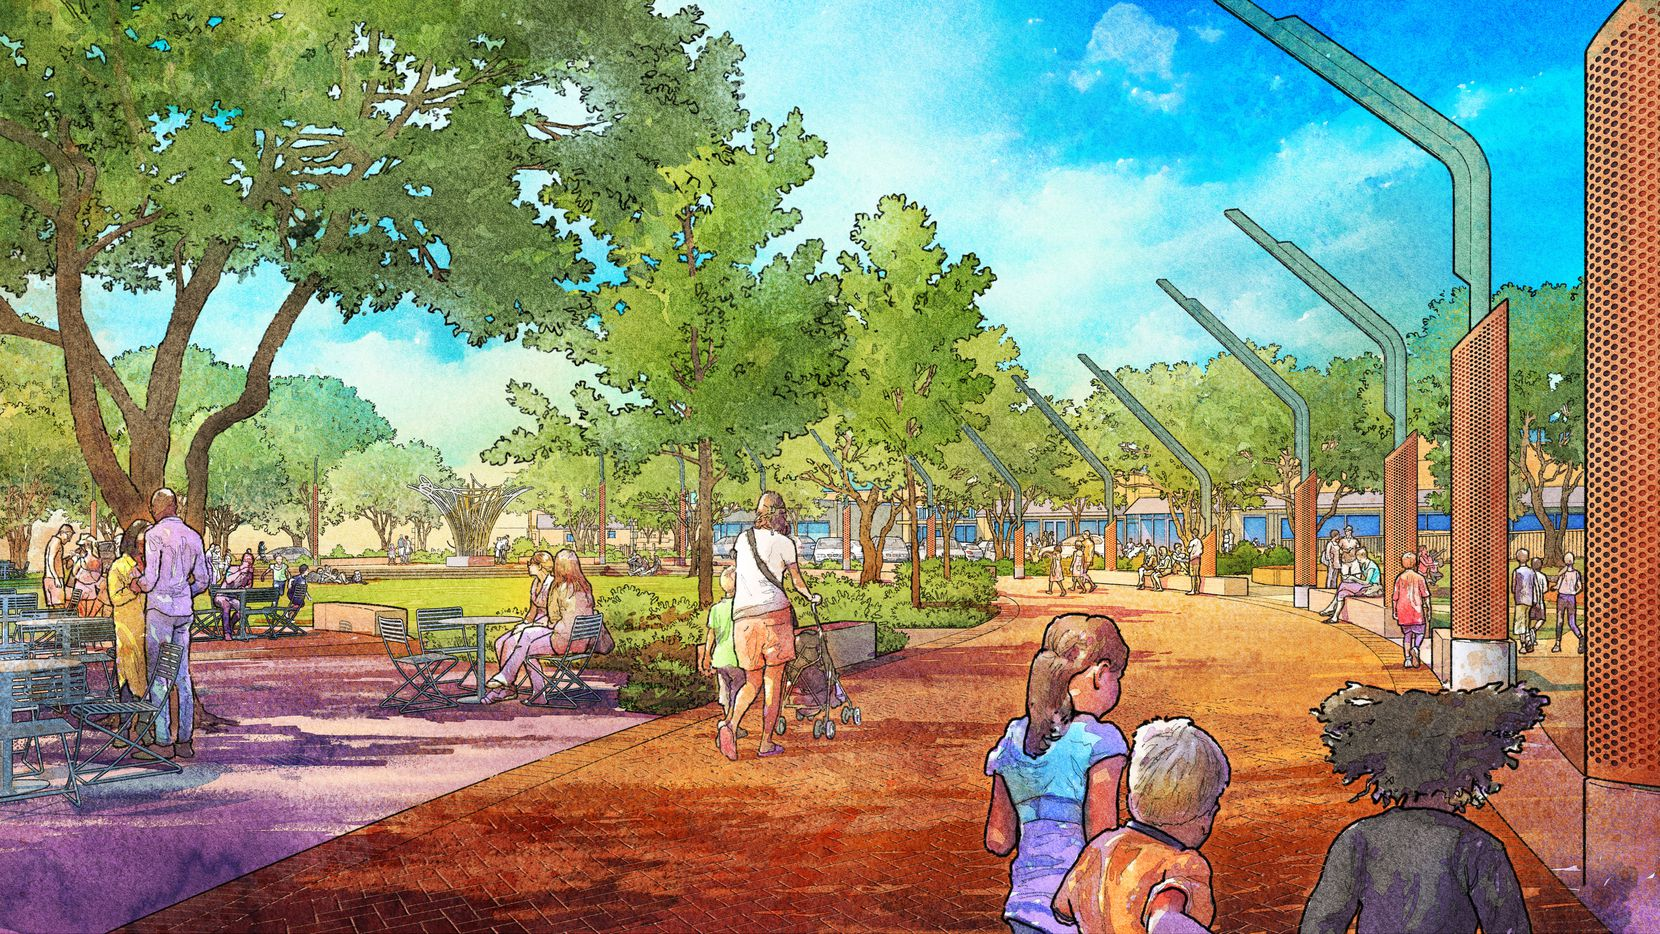 New renderings show how the city of Garland hopes to redevelop its downtown square to include a walkway and new lighting, among other features.